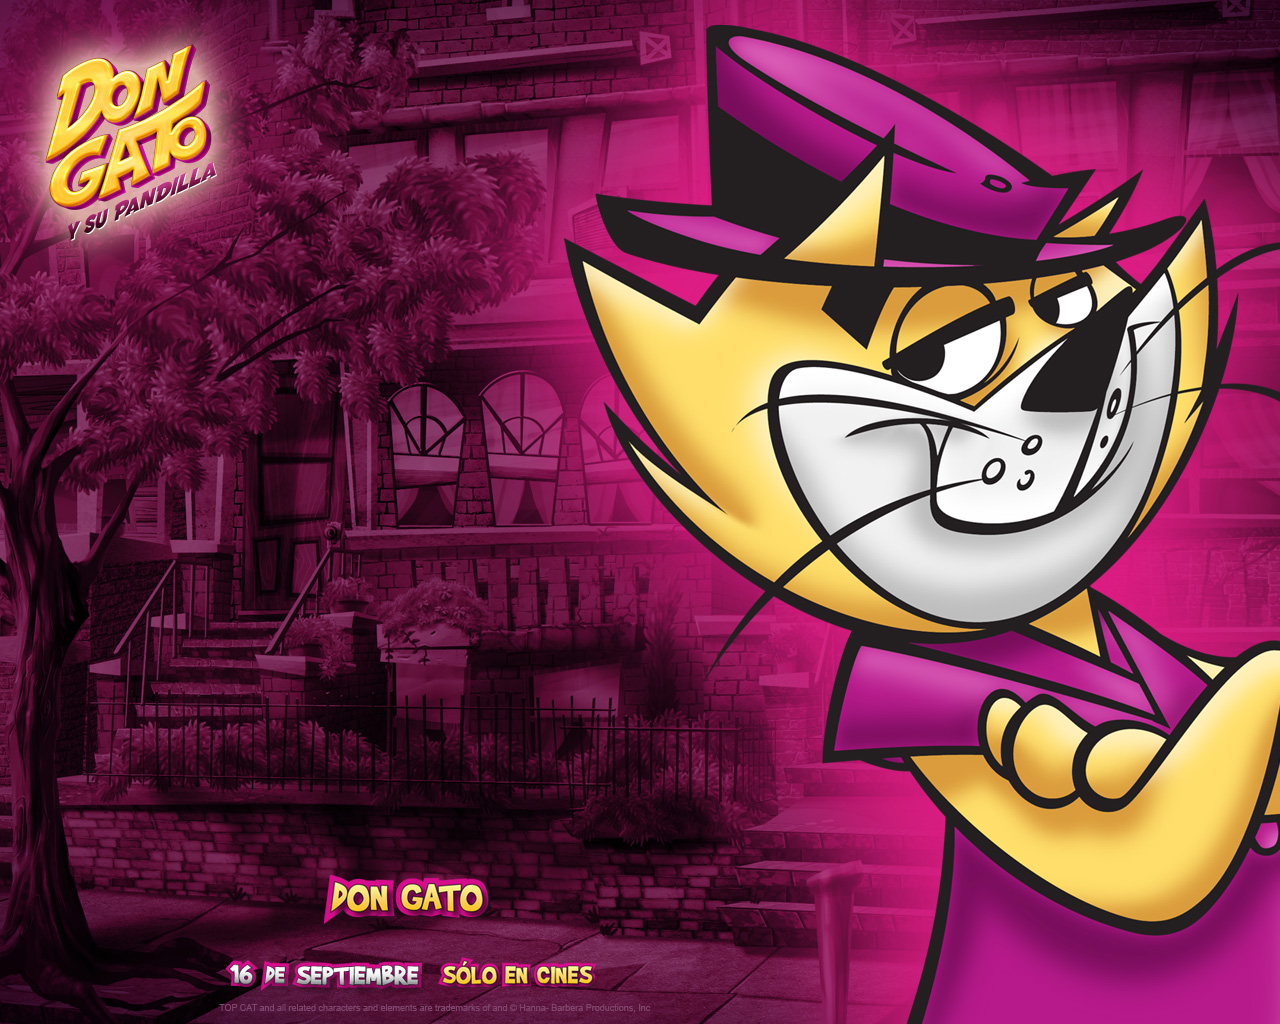 A MILLION OF WALLPAPERSCOM TOP CAT 3D MOVIE WALLPAPERS